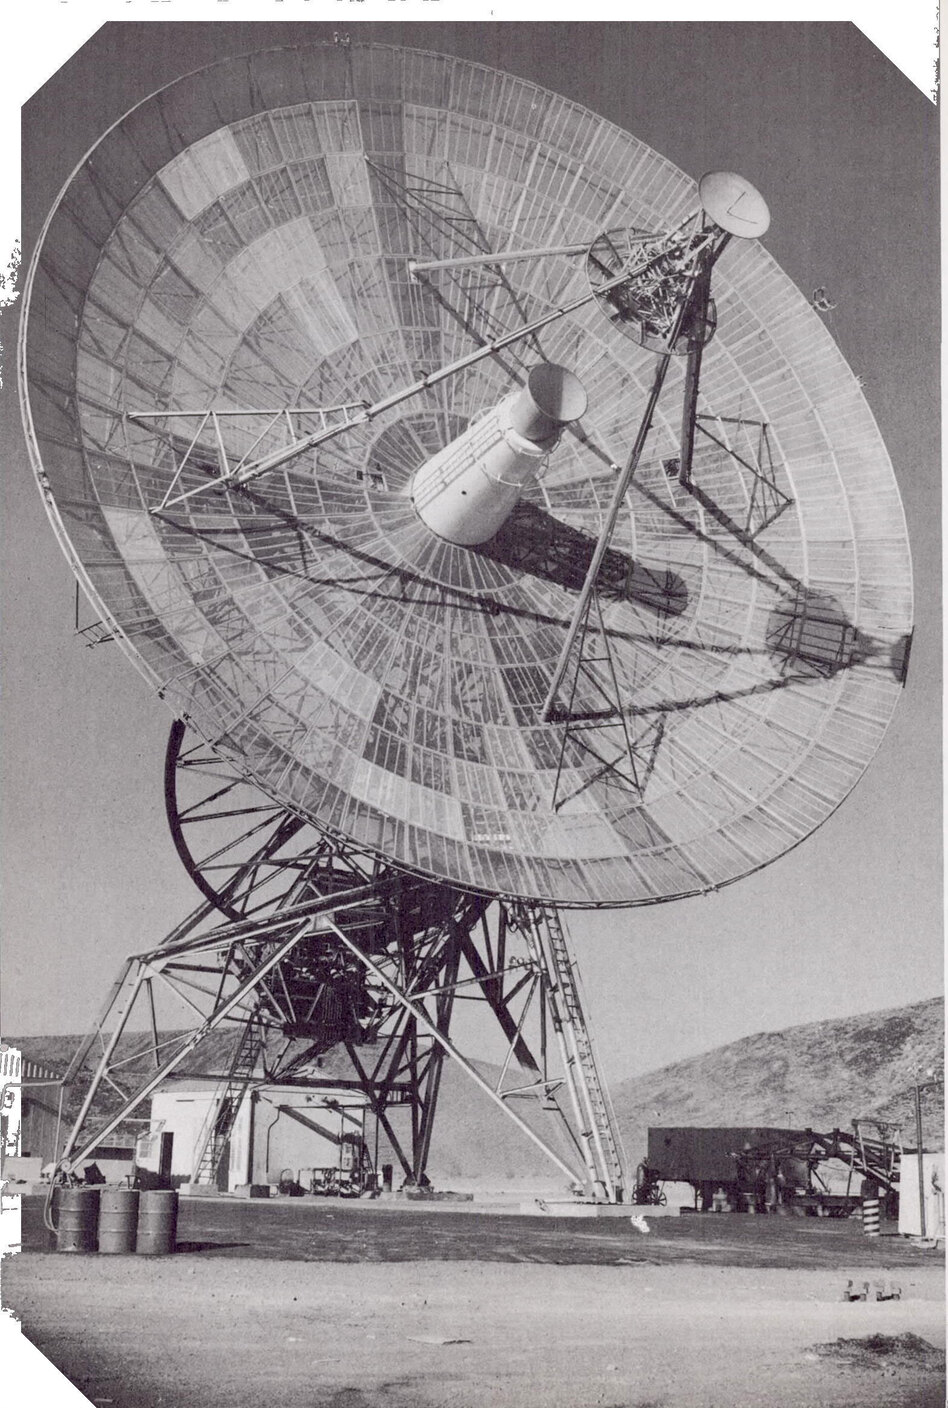 Radio signals from the Mariner spacecraft were received on three 85-foot antennas like this one, which were built in California's Mojave desert, near Johannesburg in South Africa, and near Woomera in southern Australia. (NASA/JPL/Caltech)